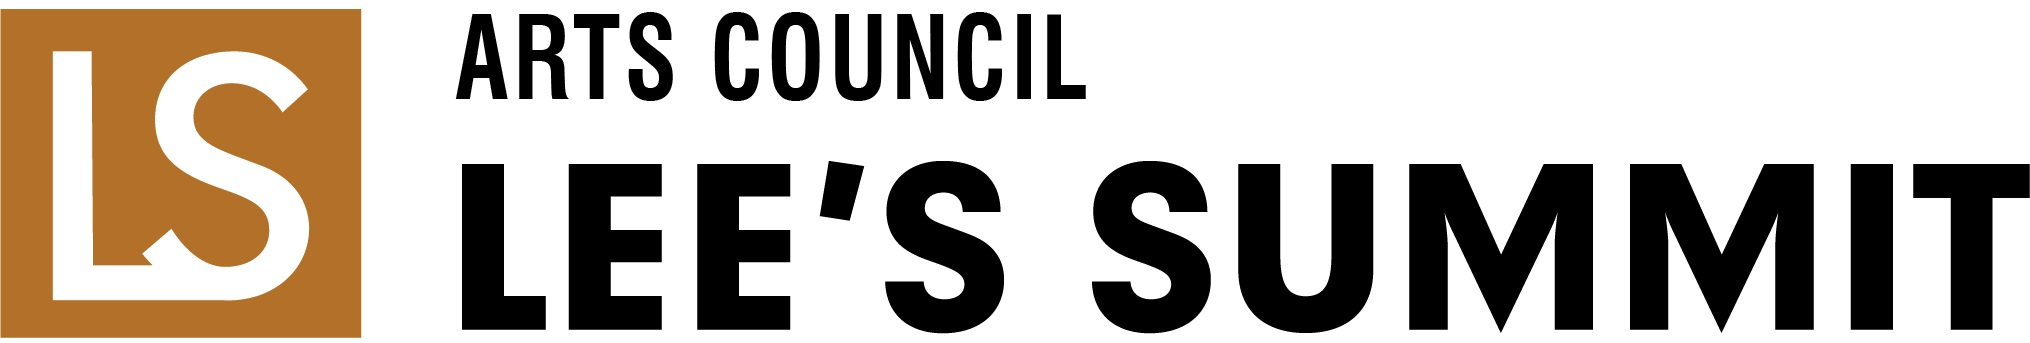 LS Arts Council logo